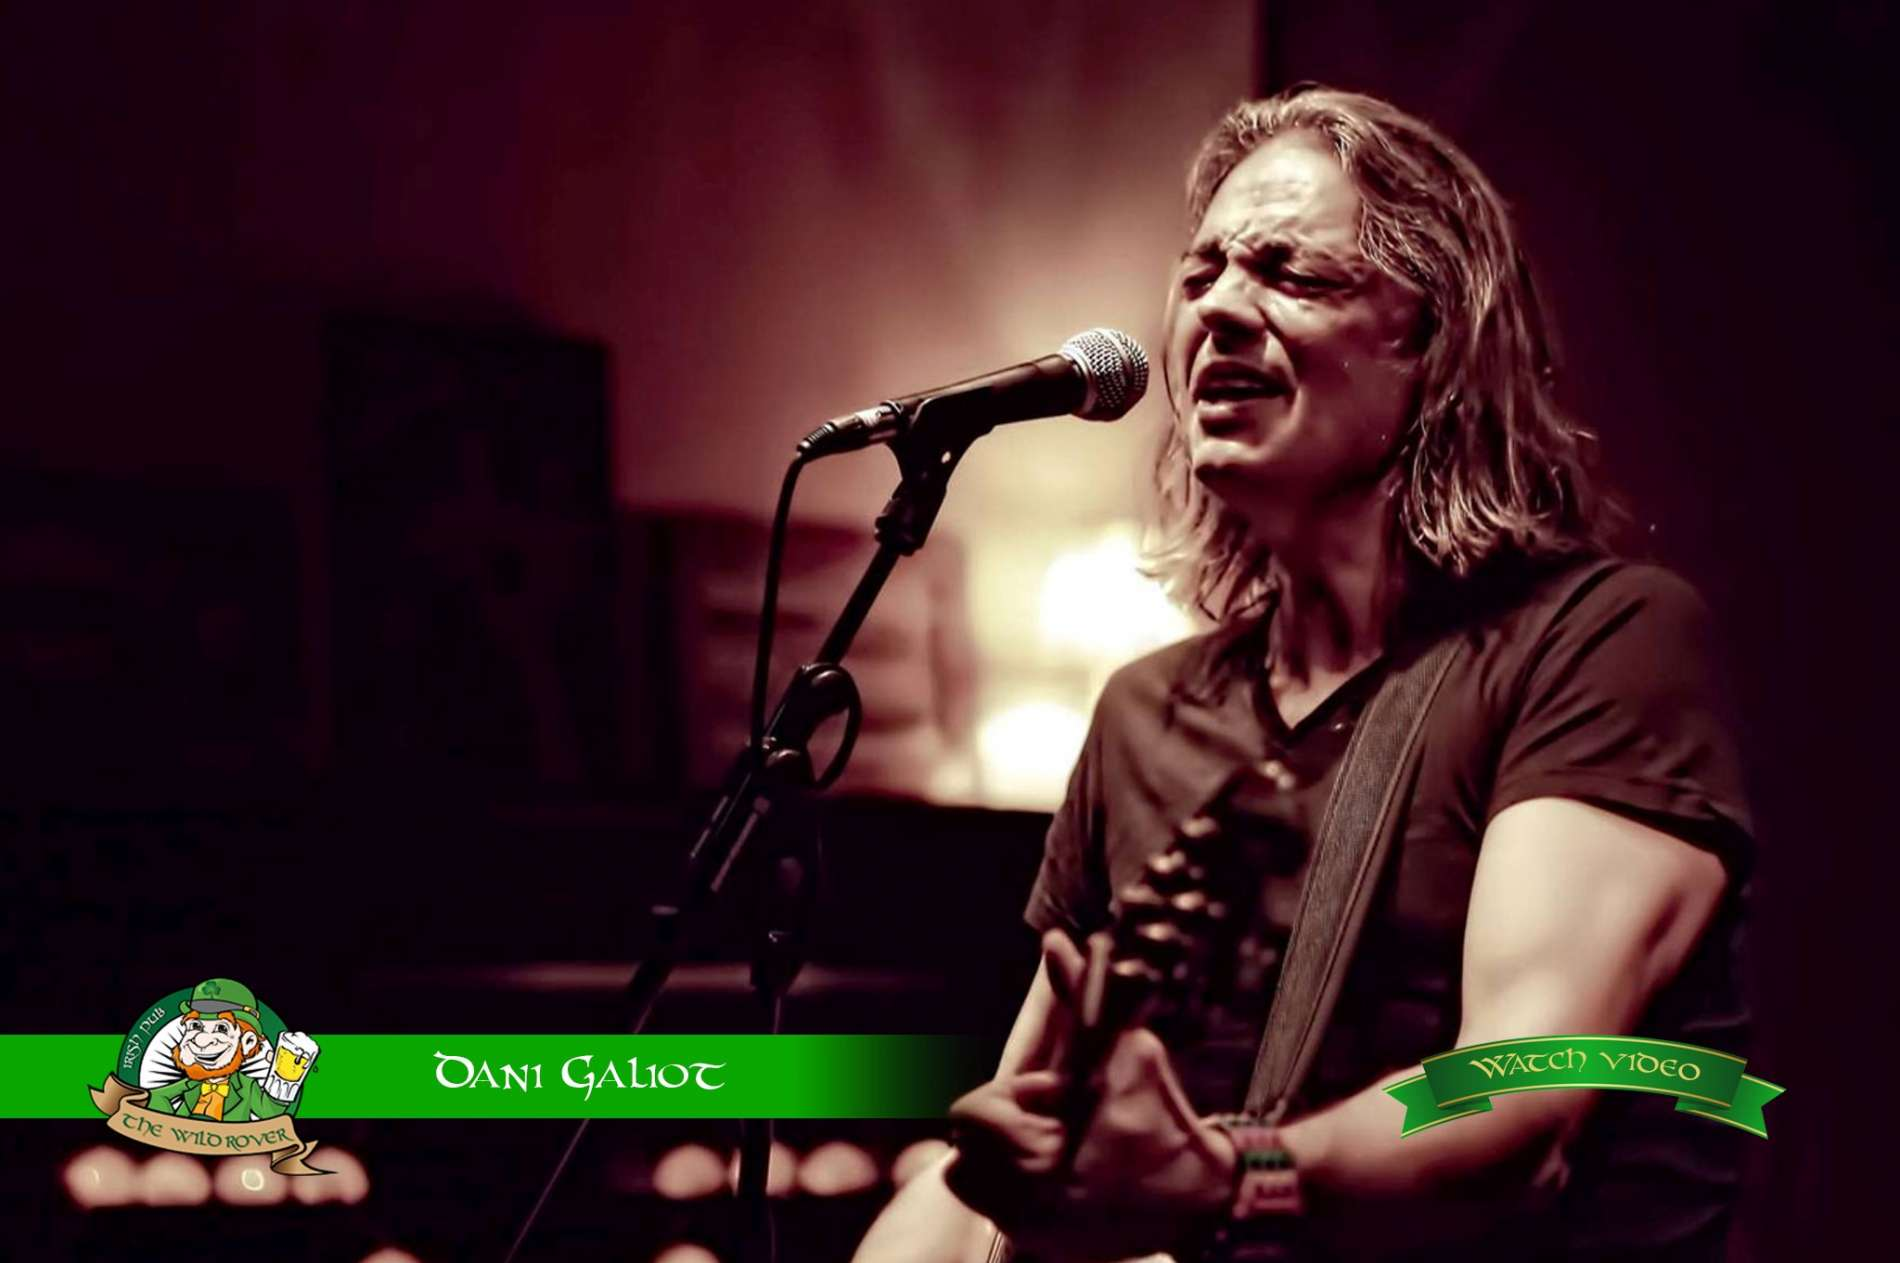 Dani-Galiot-web-Live Music